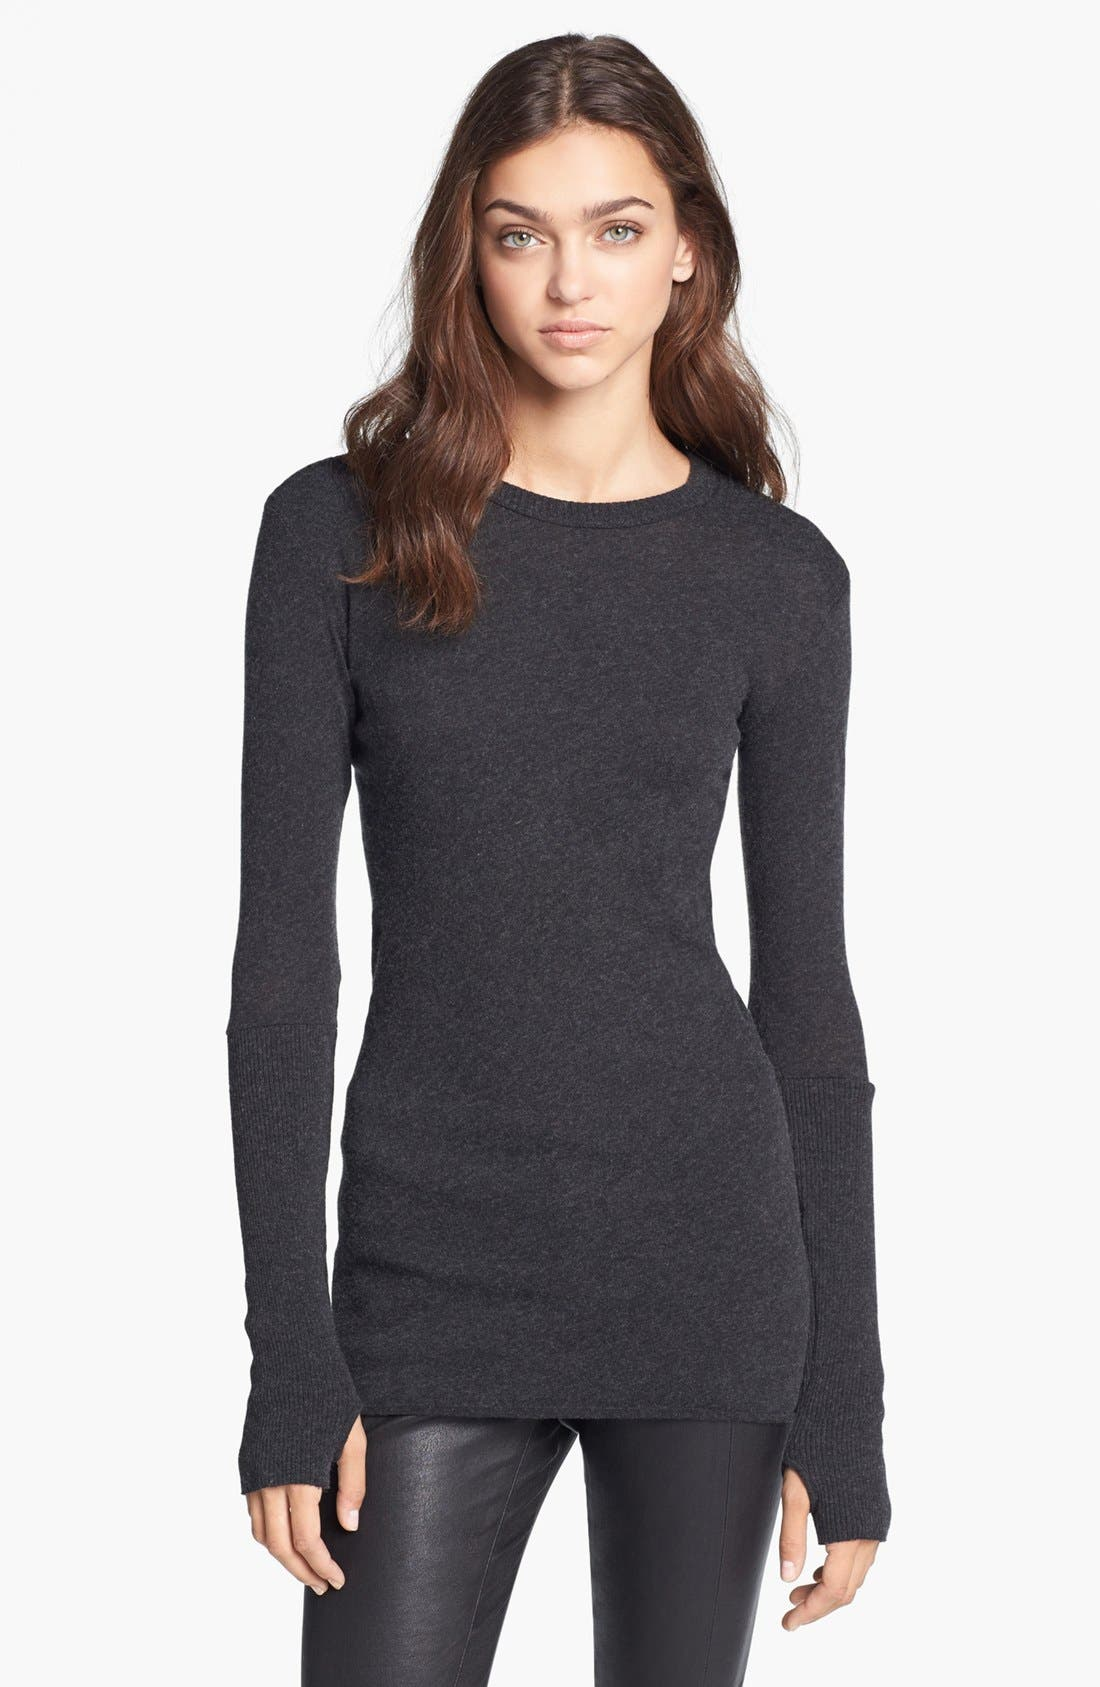 Alternate Image 1 Selected - Enza Costa Cotton & Cashmere Jersey Sweater